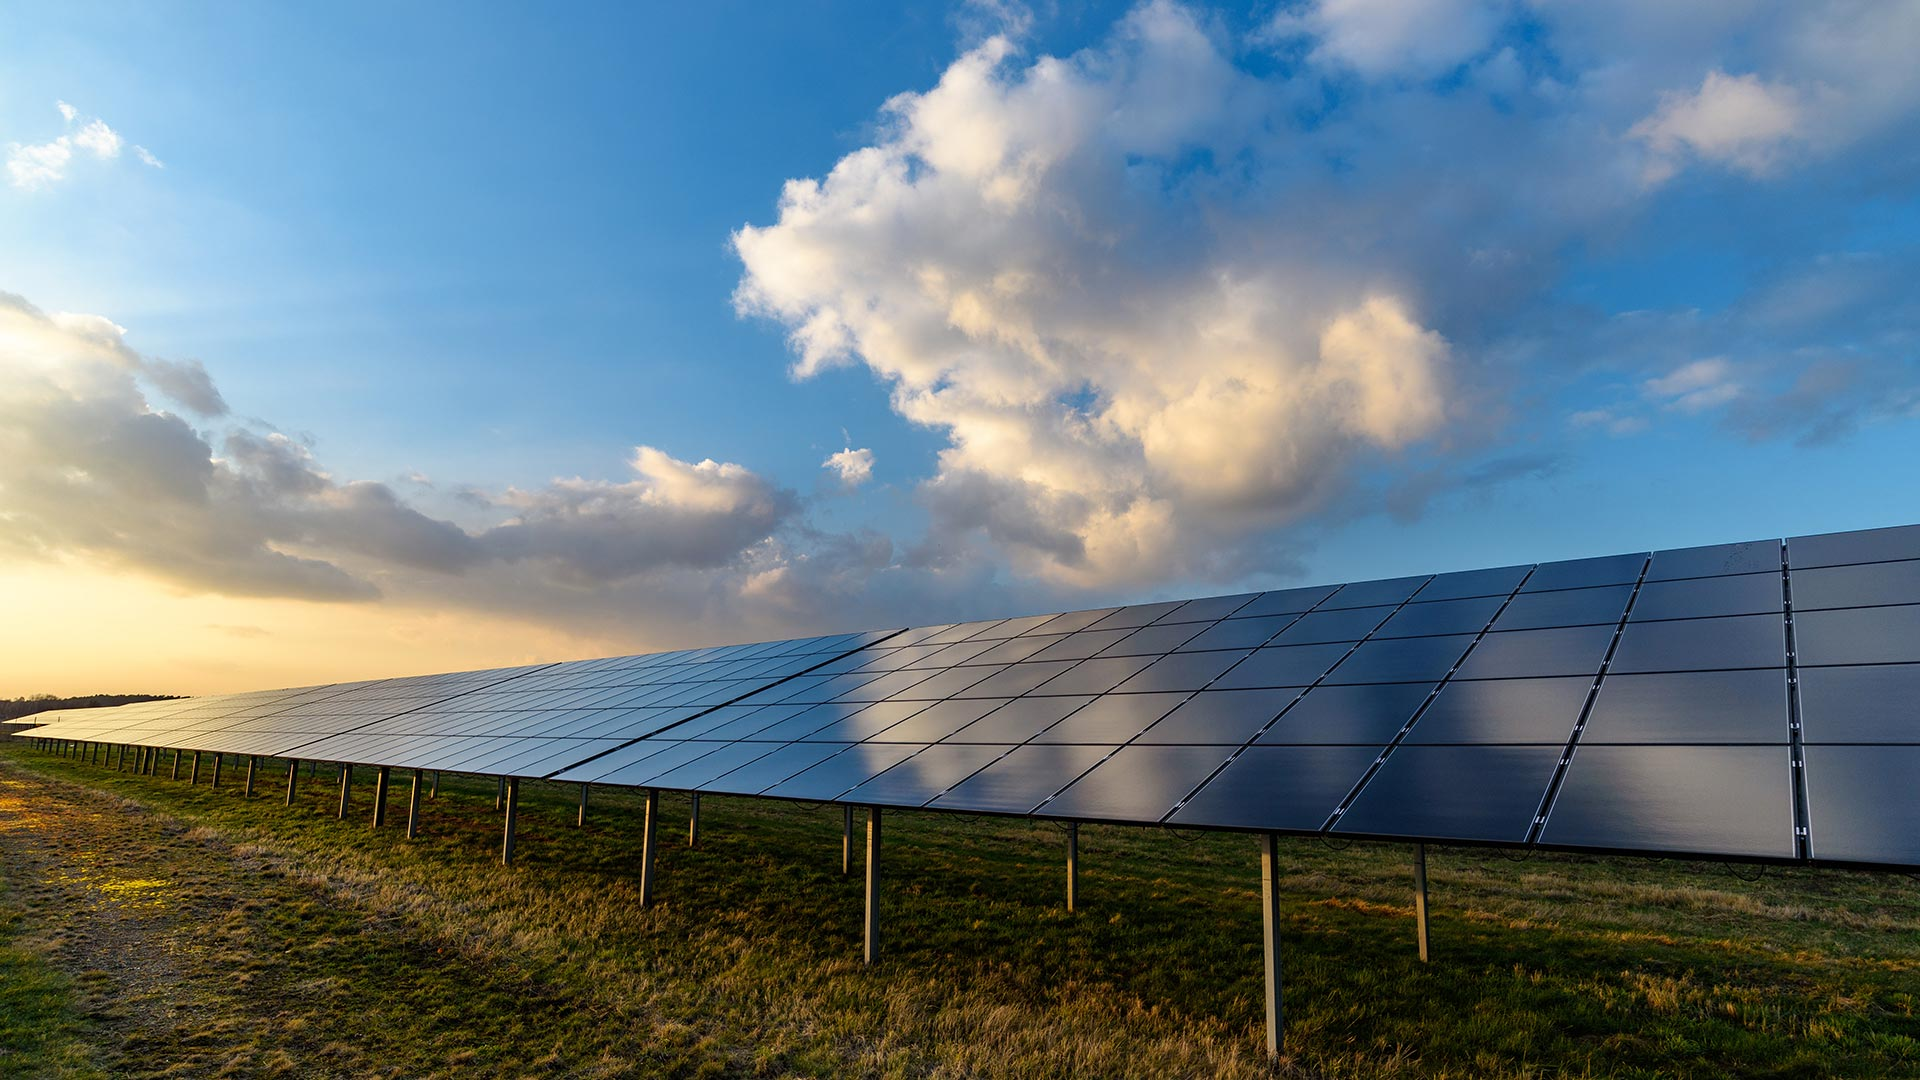 solar panels in a field with sunset